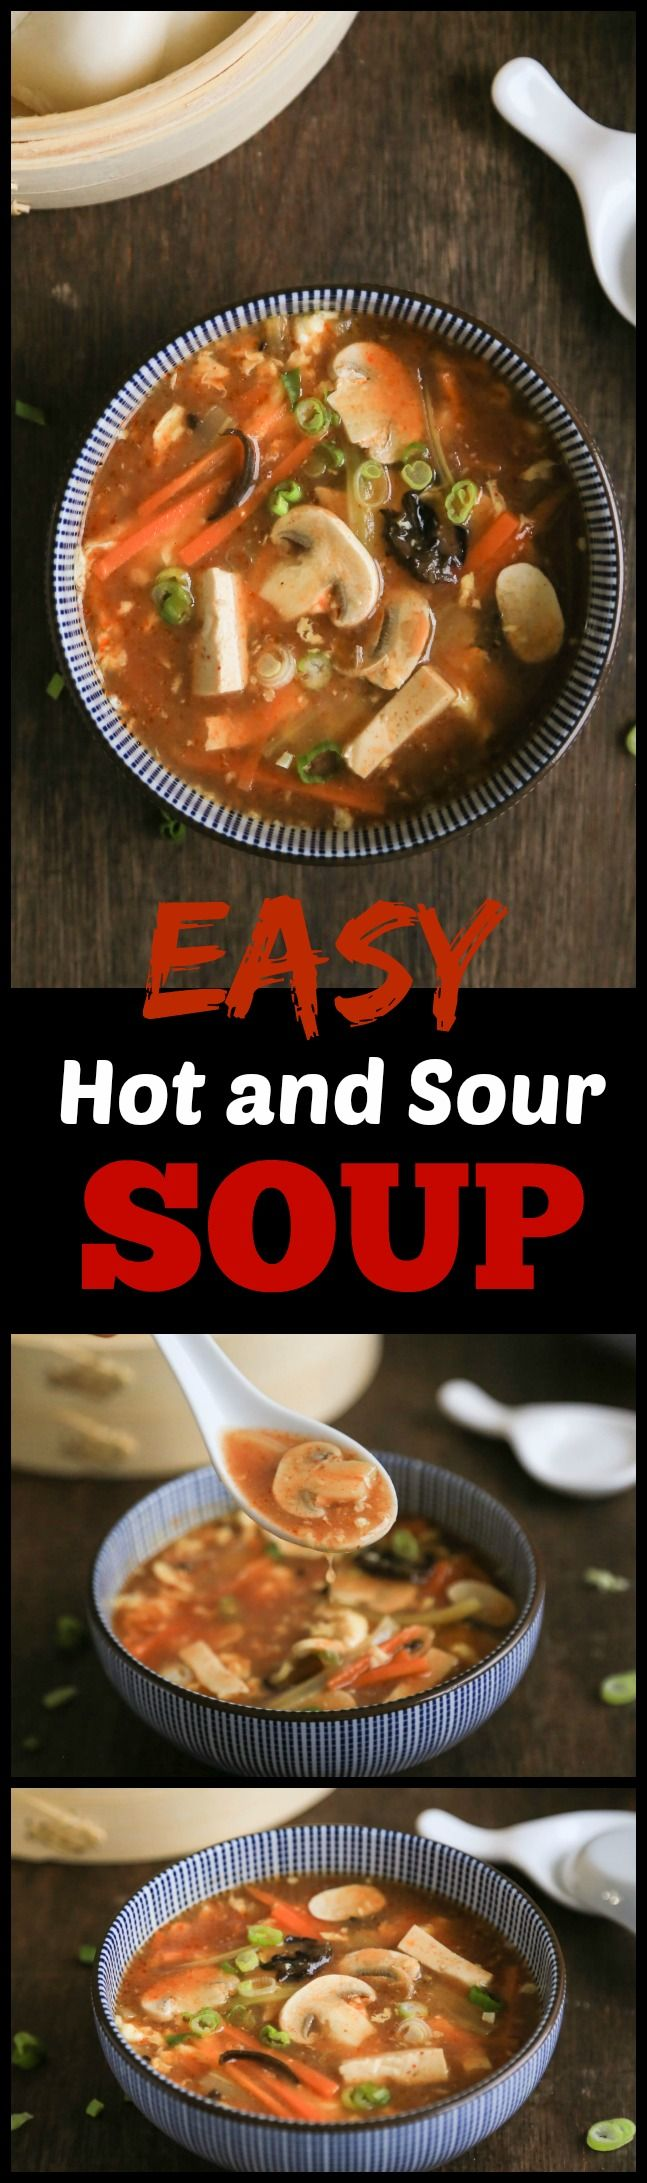 This easy and delicious hot and sour soup is just so much better than the Chinese takeout version with fresh ingredients and no MSN. Best of all, it only takes 20 minutes to put together.